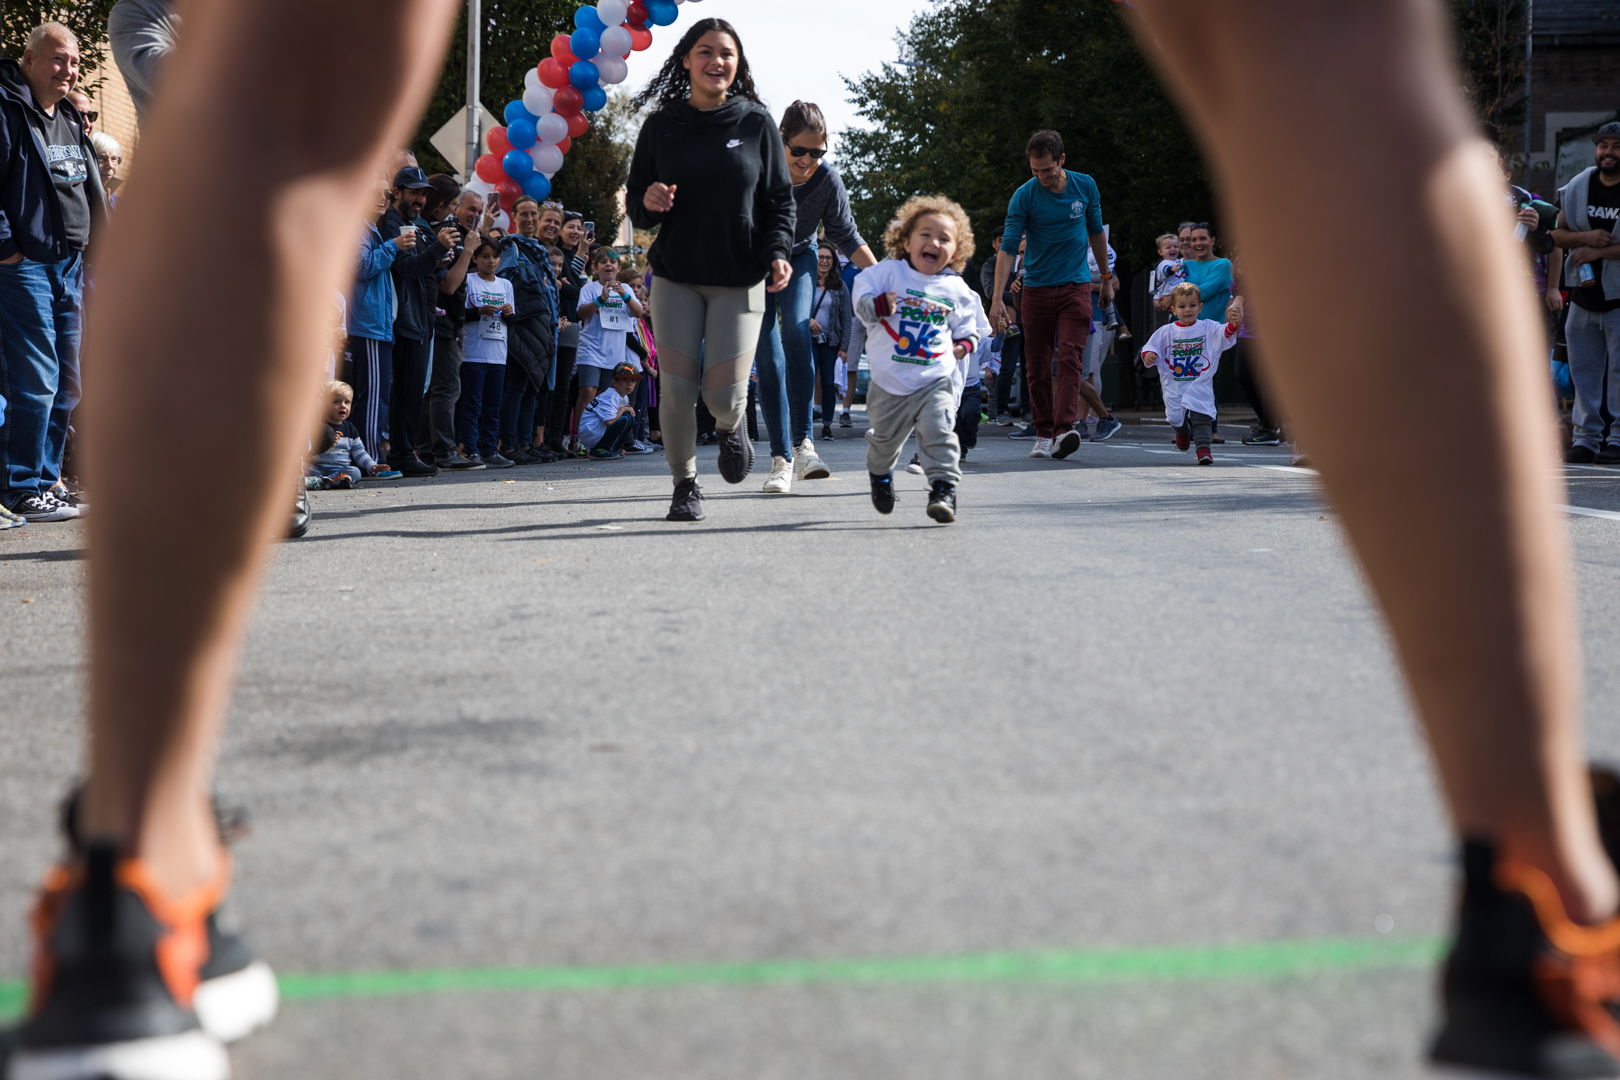 A little girl makes her way to the finish line in a dash. Eagle photo by Paul Frangipane